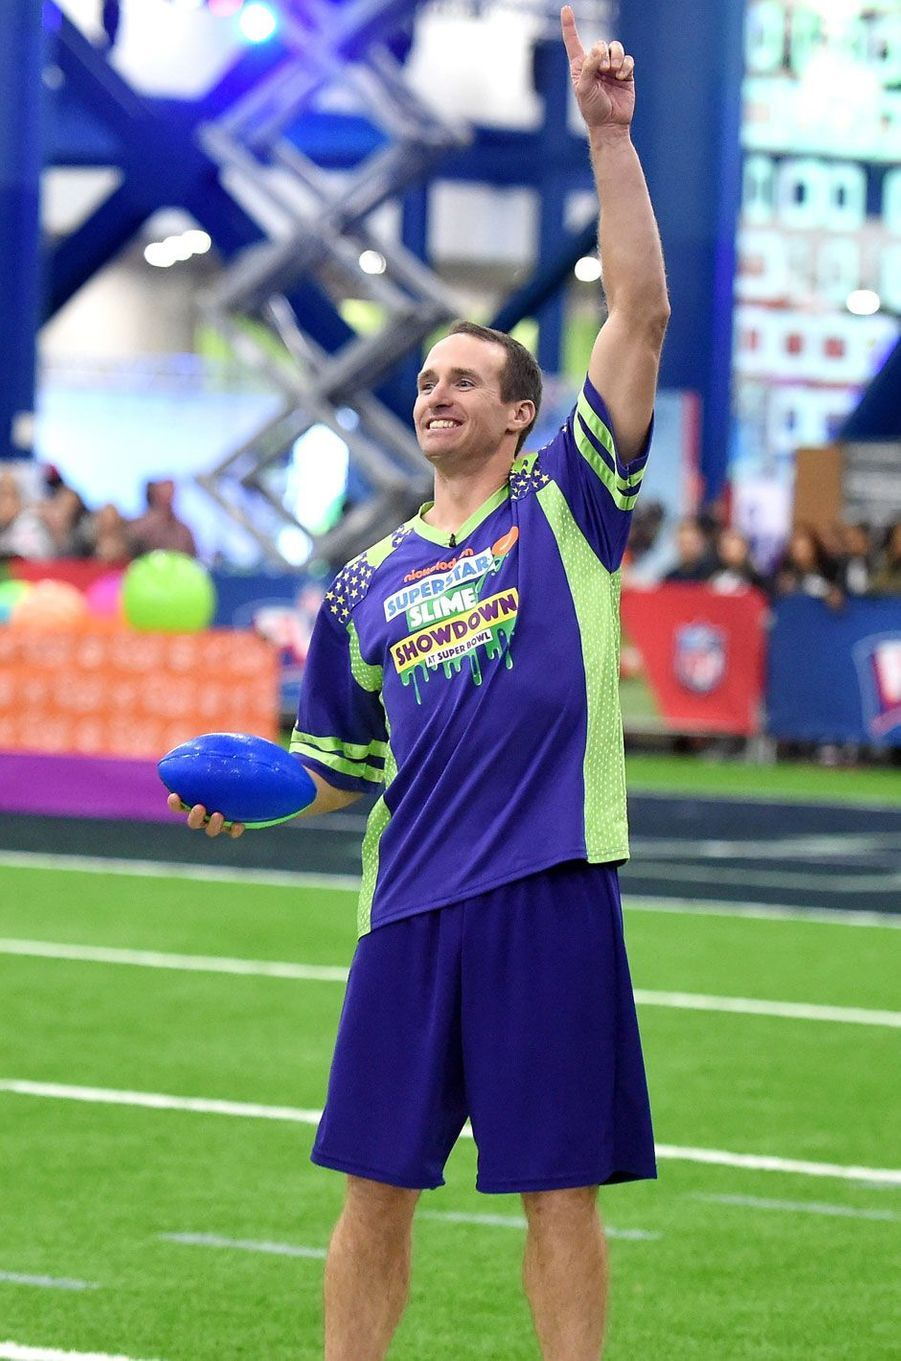 Drew Brees, 45,3 millions de dollars